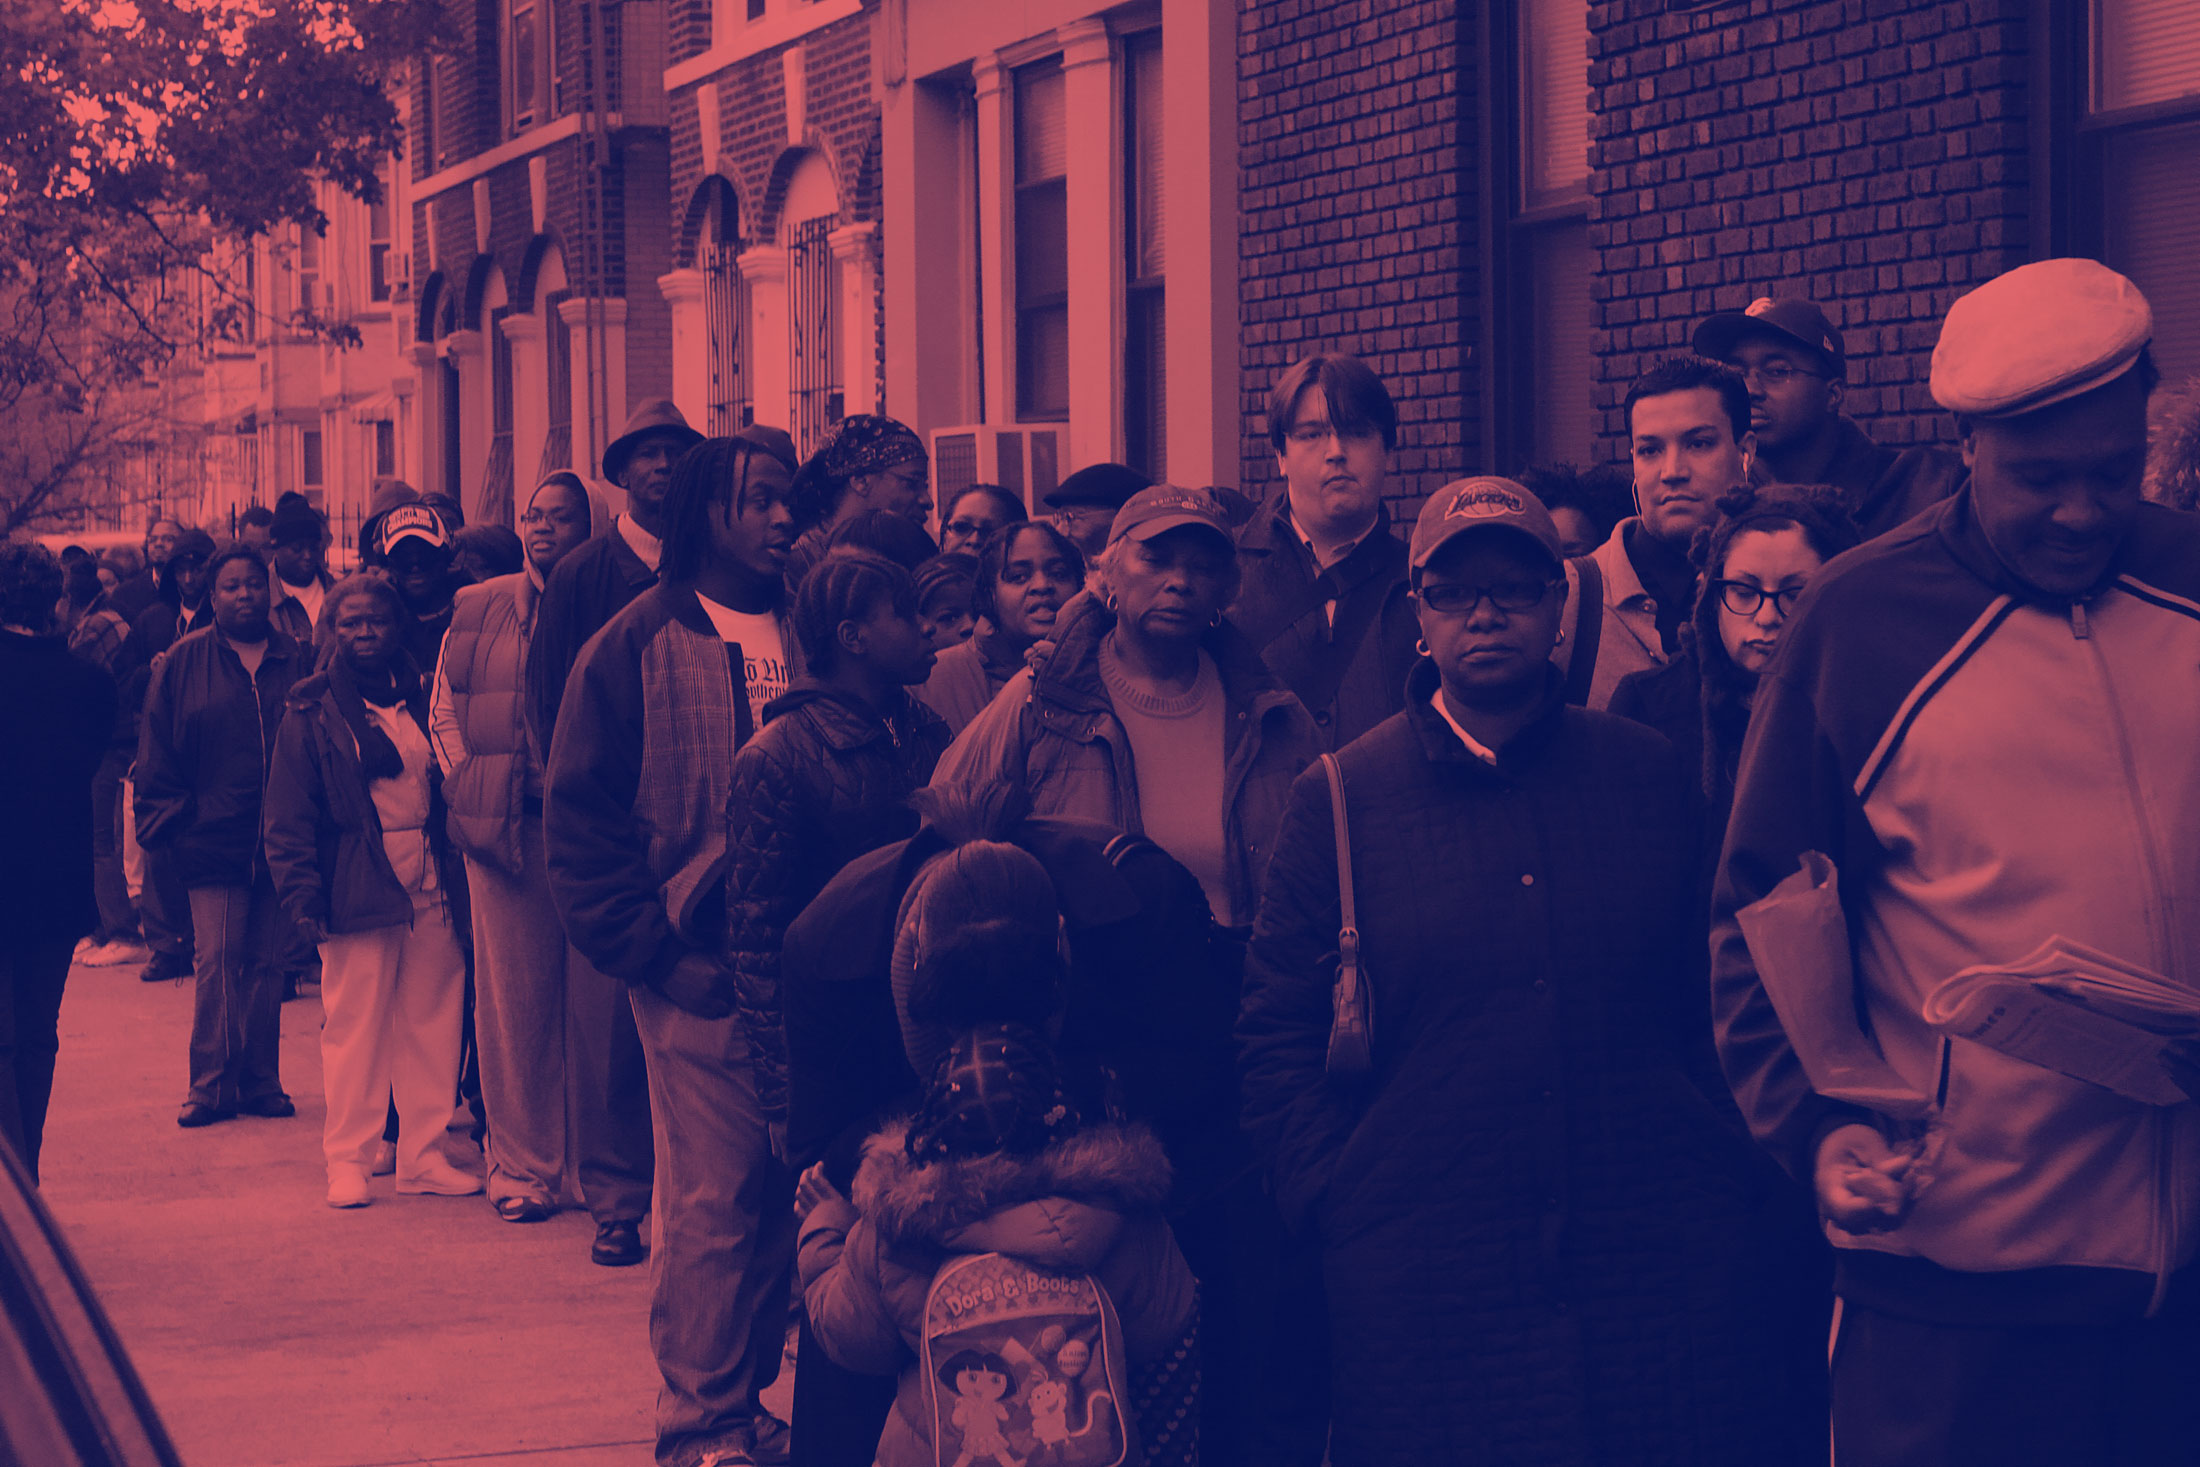 Data mining shows black people waited longer than white to vote in 2016